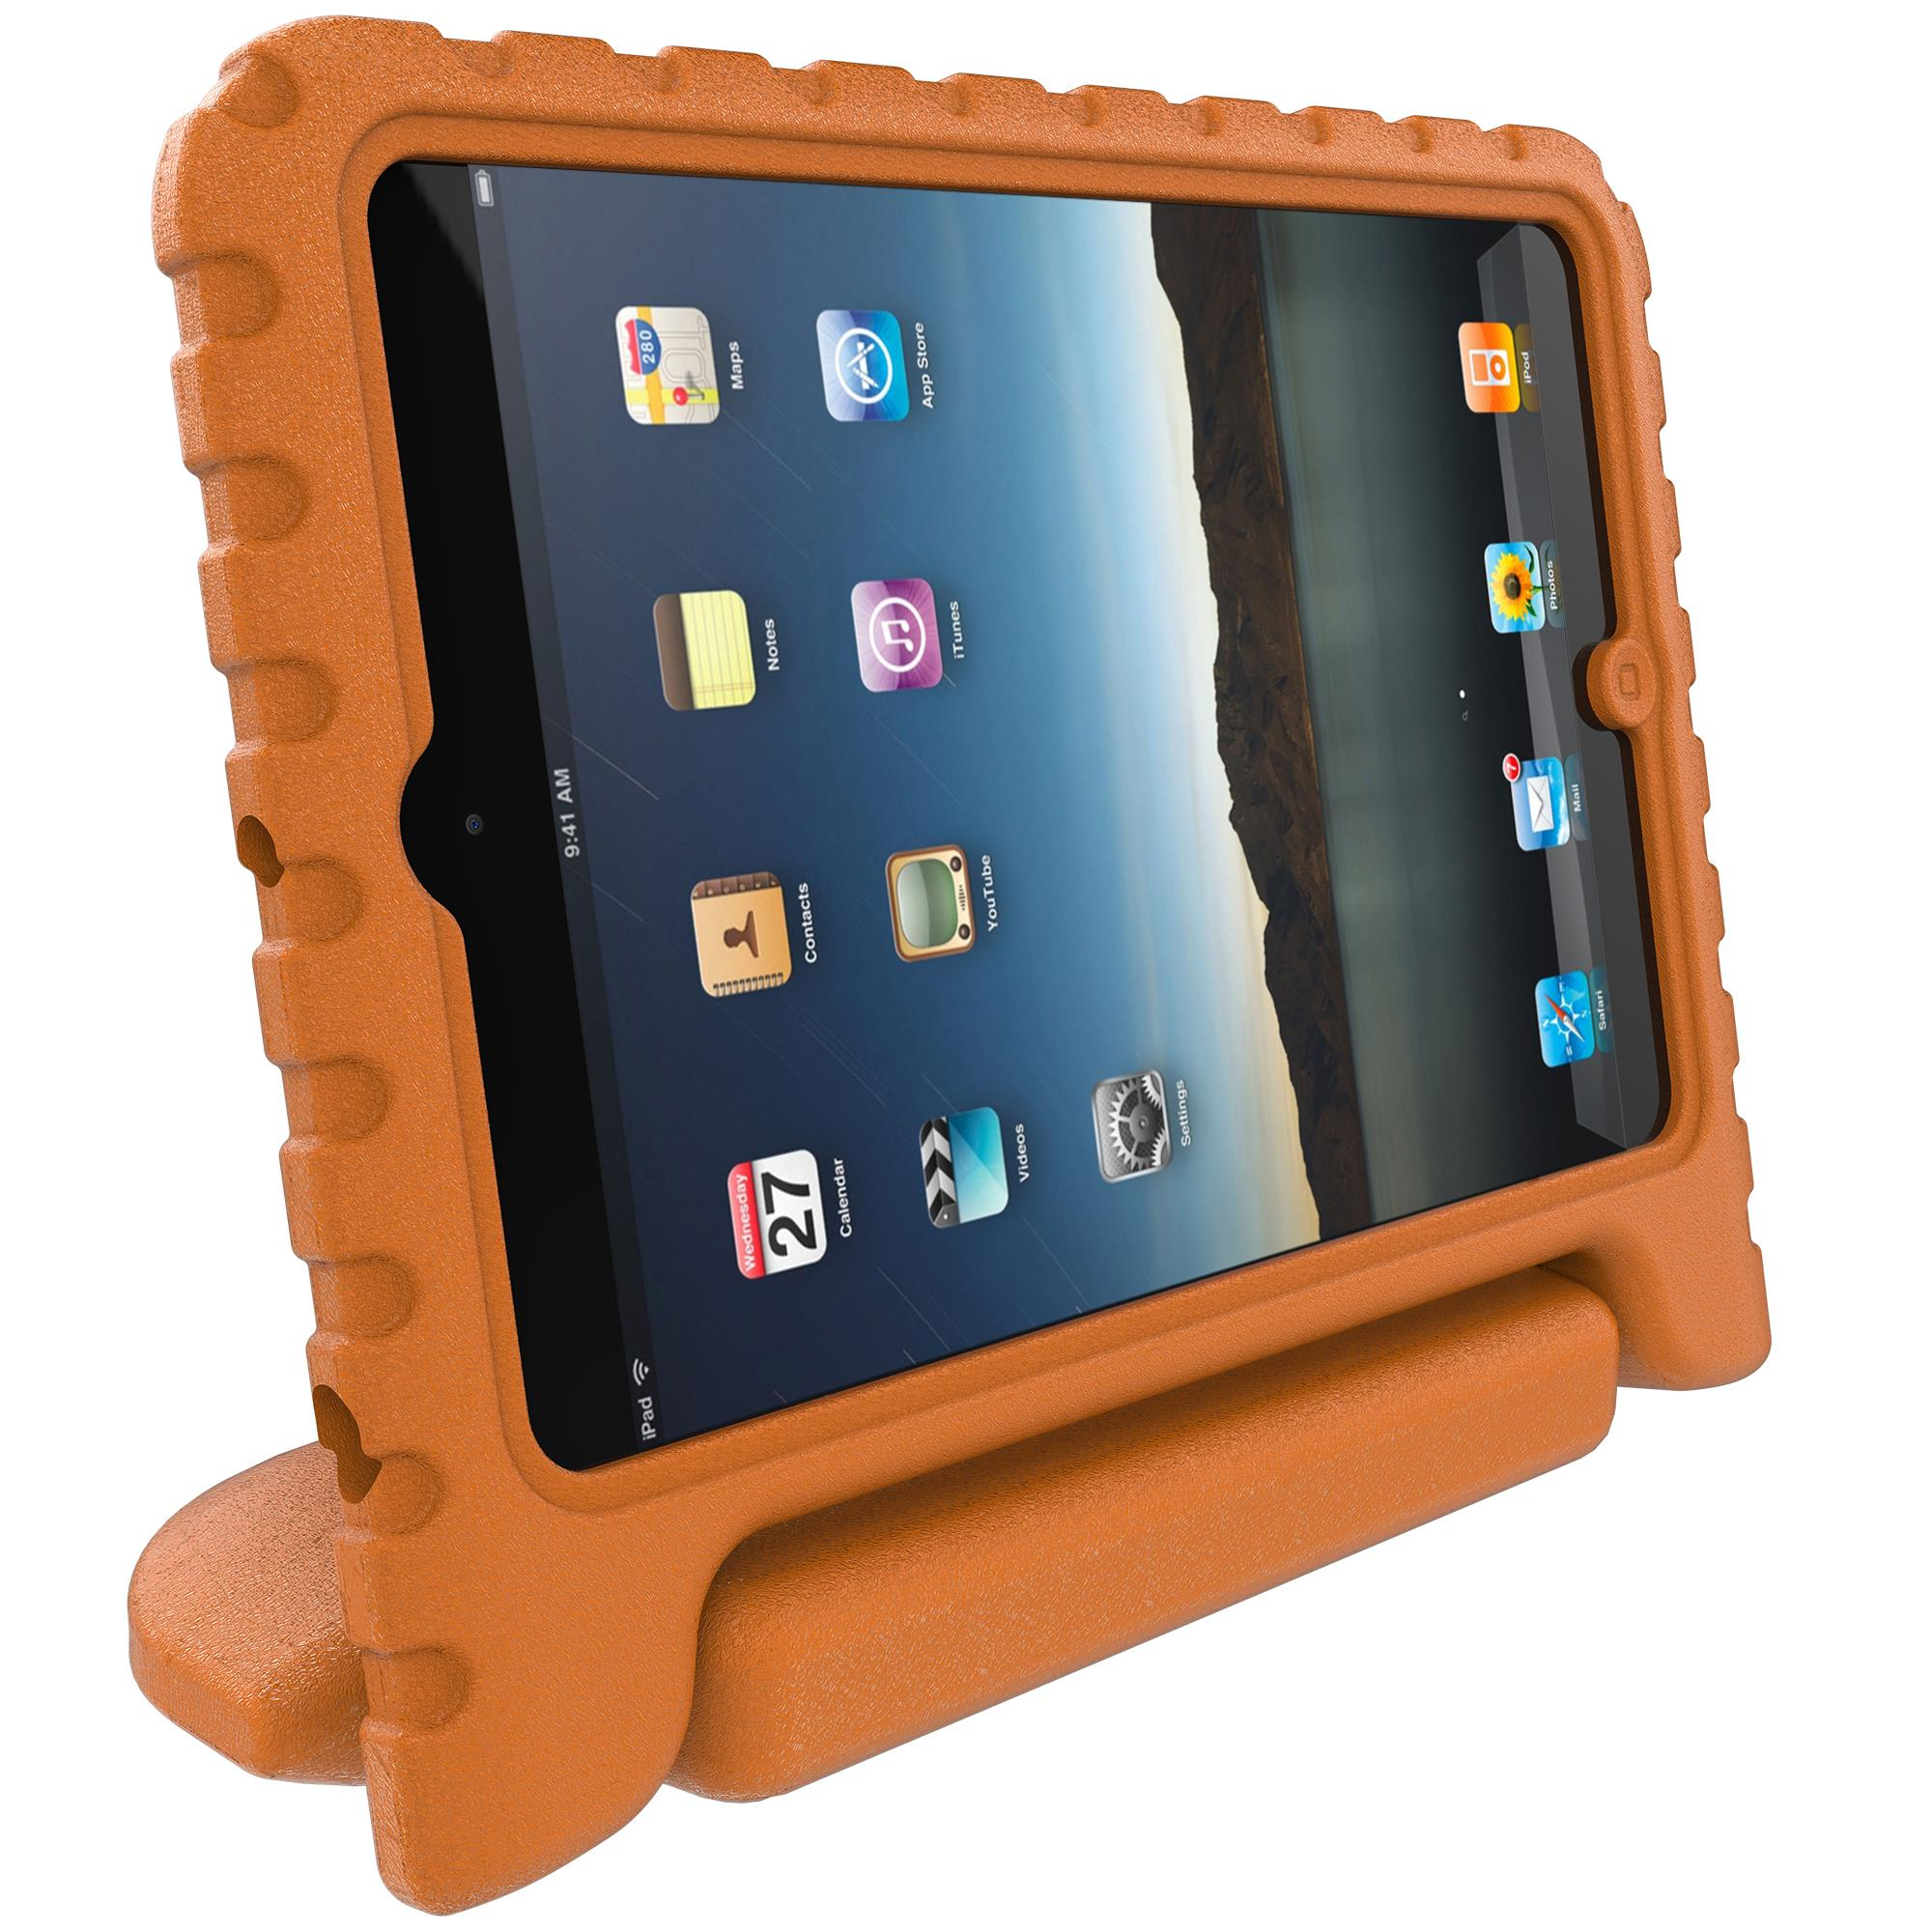 Stalion Safe Shockproof Foam Kids Case with Handle for Apple iPad 2 3 4 Air 2 Mini 1 2 3